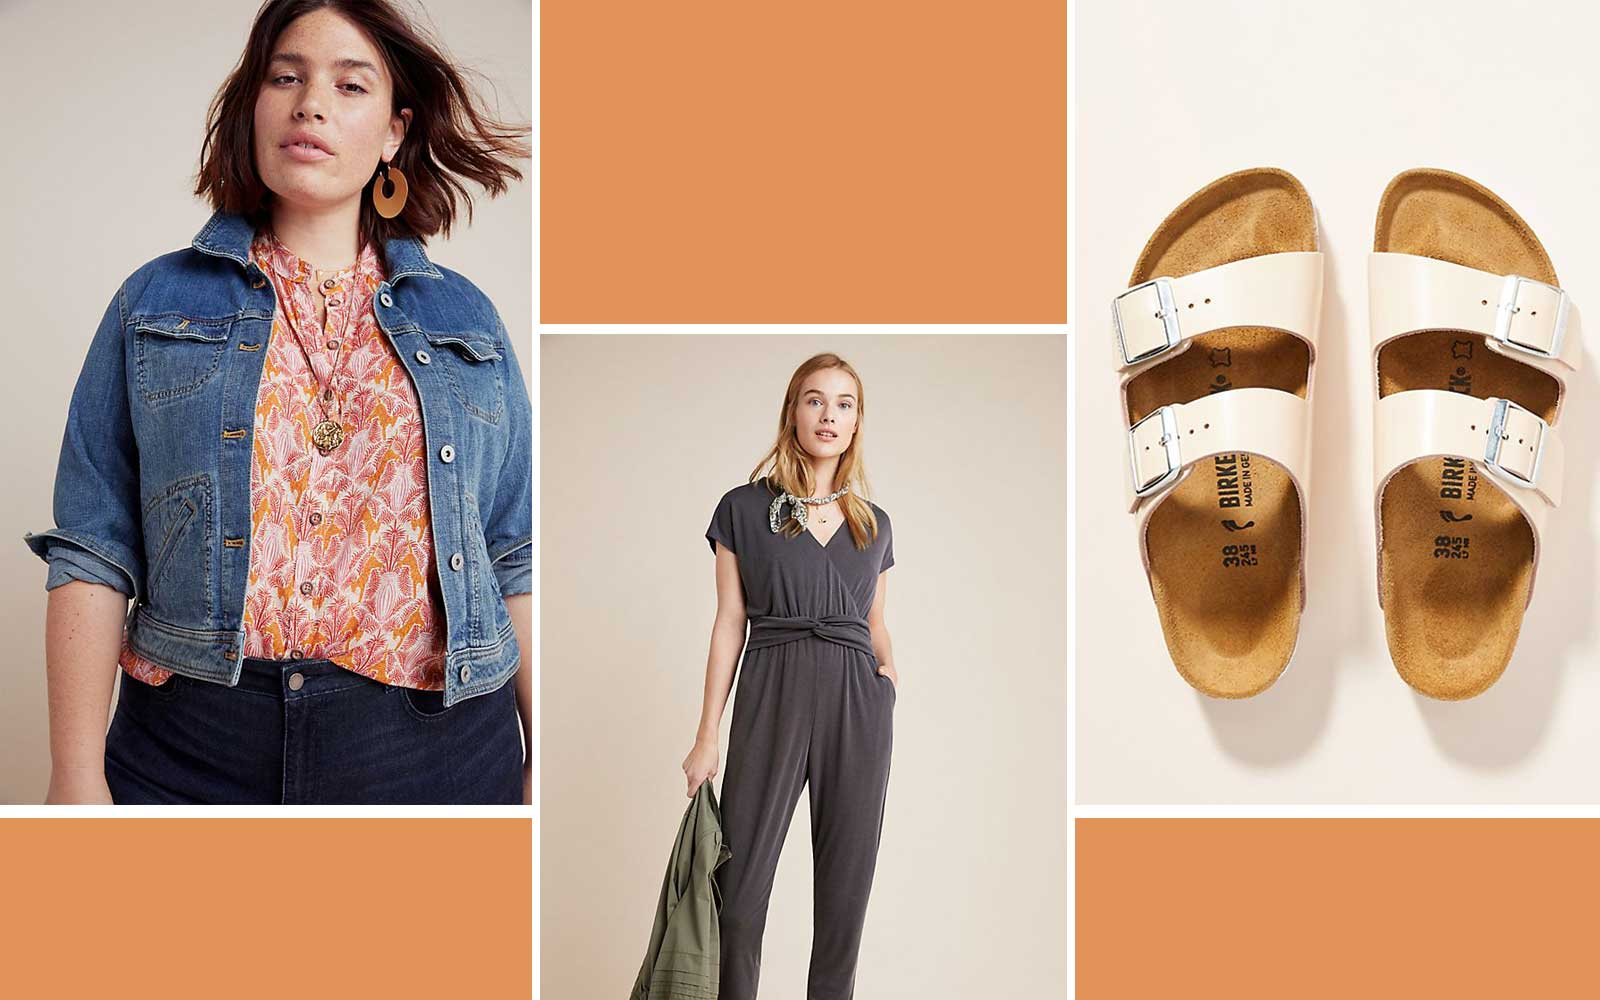 Anthropologie's Travel Shop Is Chock-full of Comfy Airport Outfits